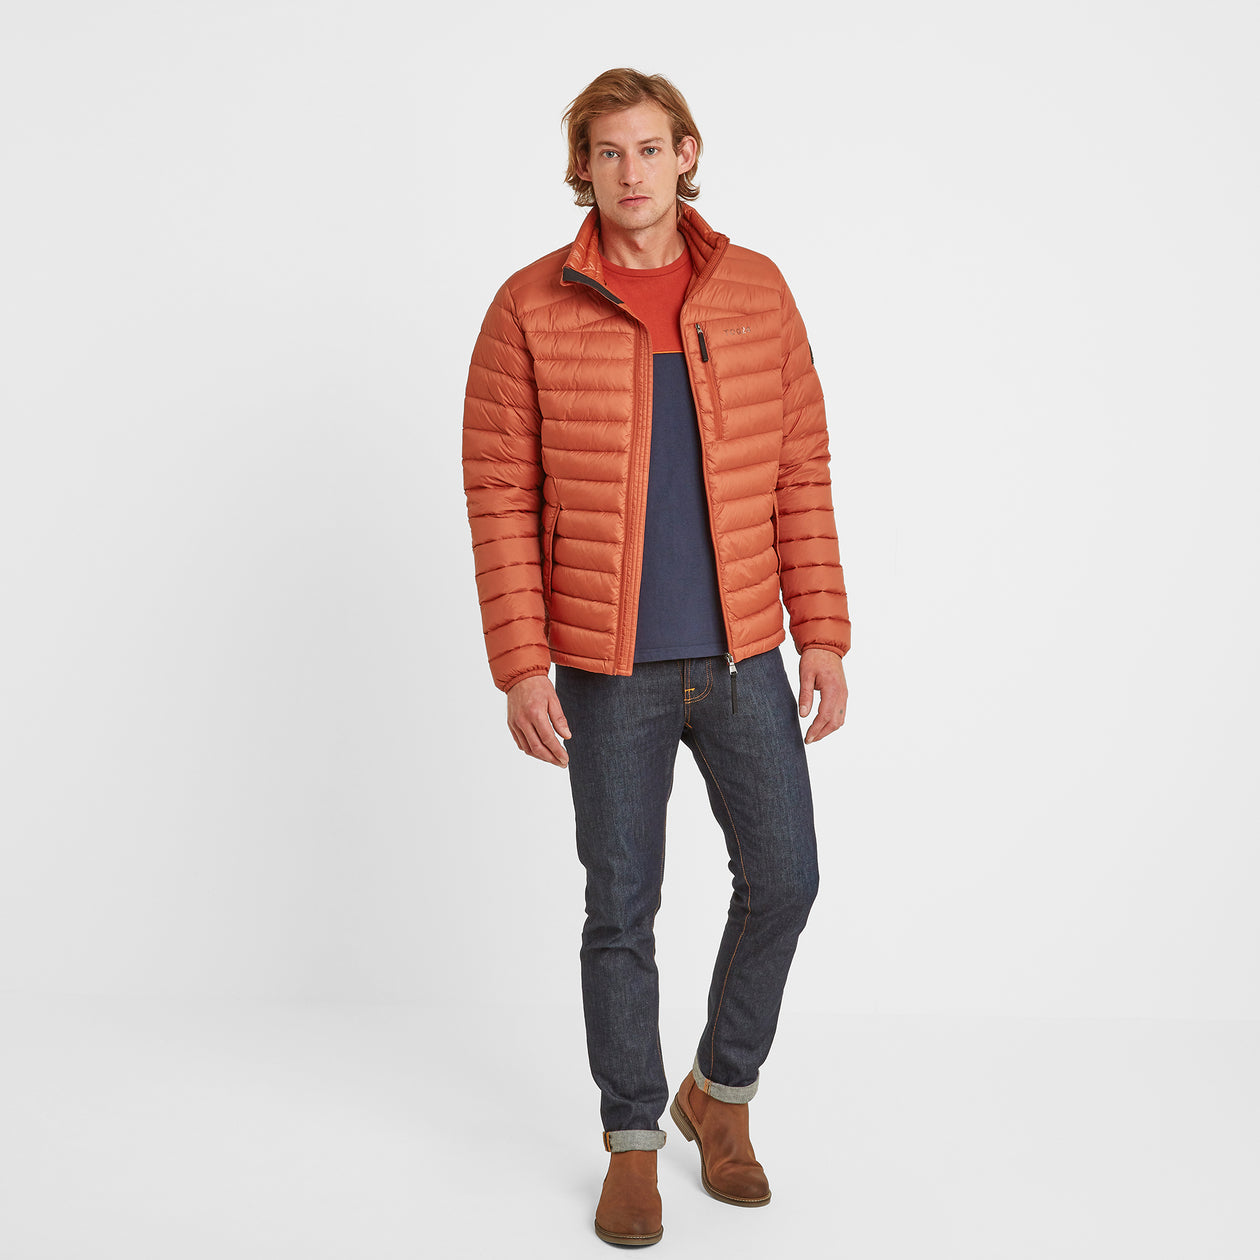 Drax Mens Funnel Down Jacket - Burnt Orange image 4